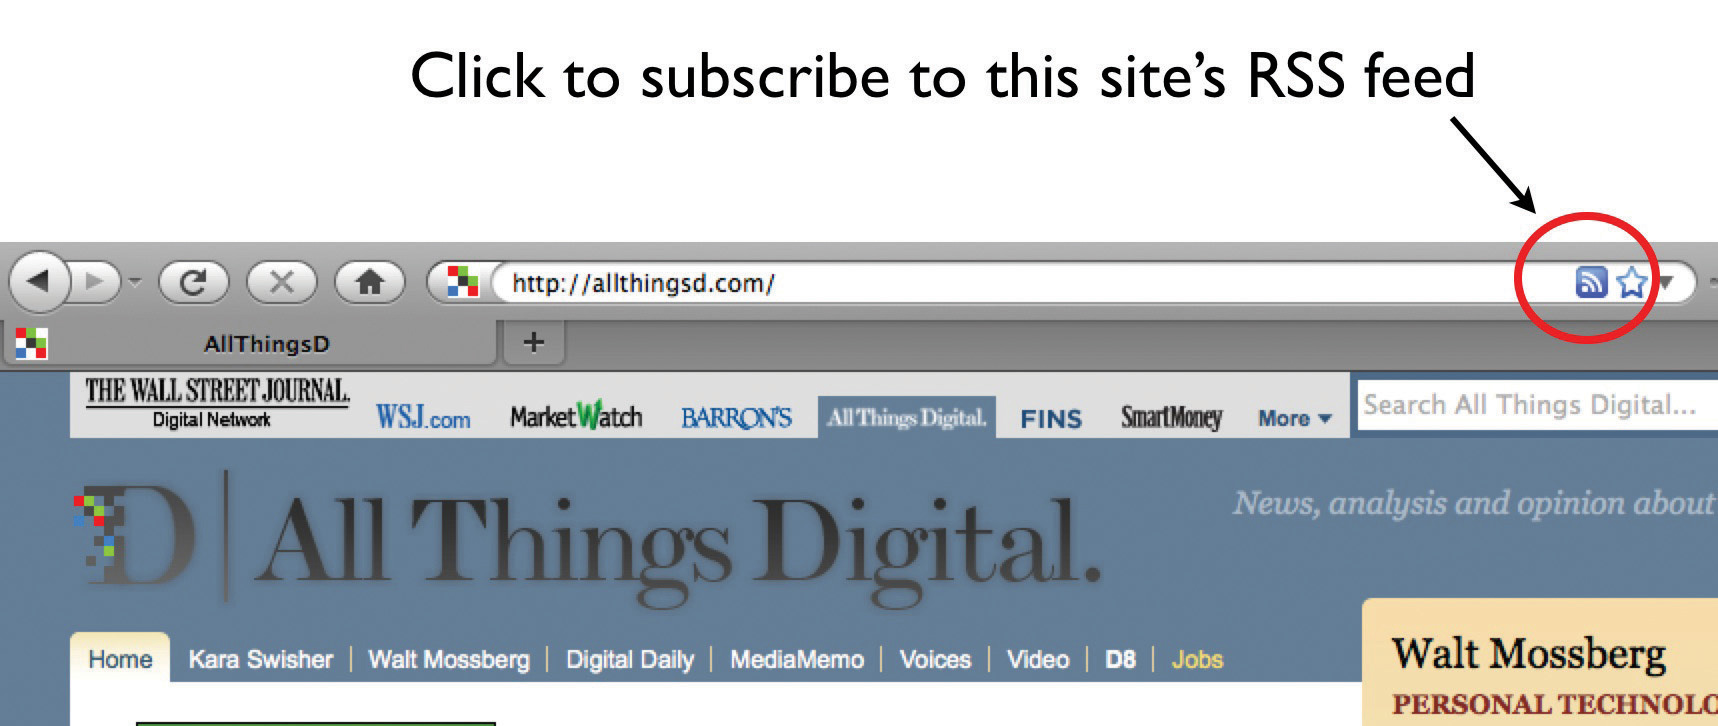 Screen shot showing how to subscripe to a site's RSS feed